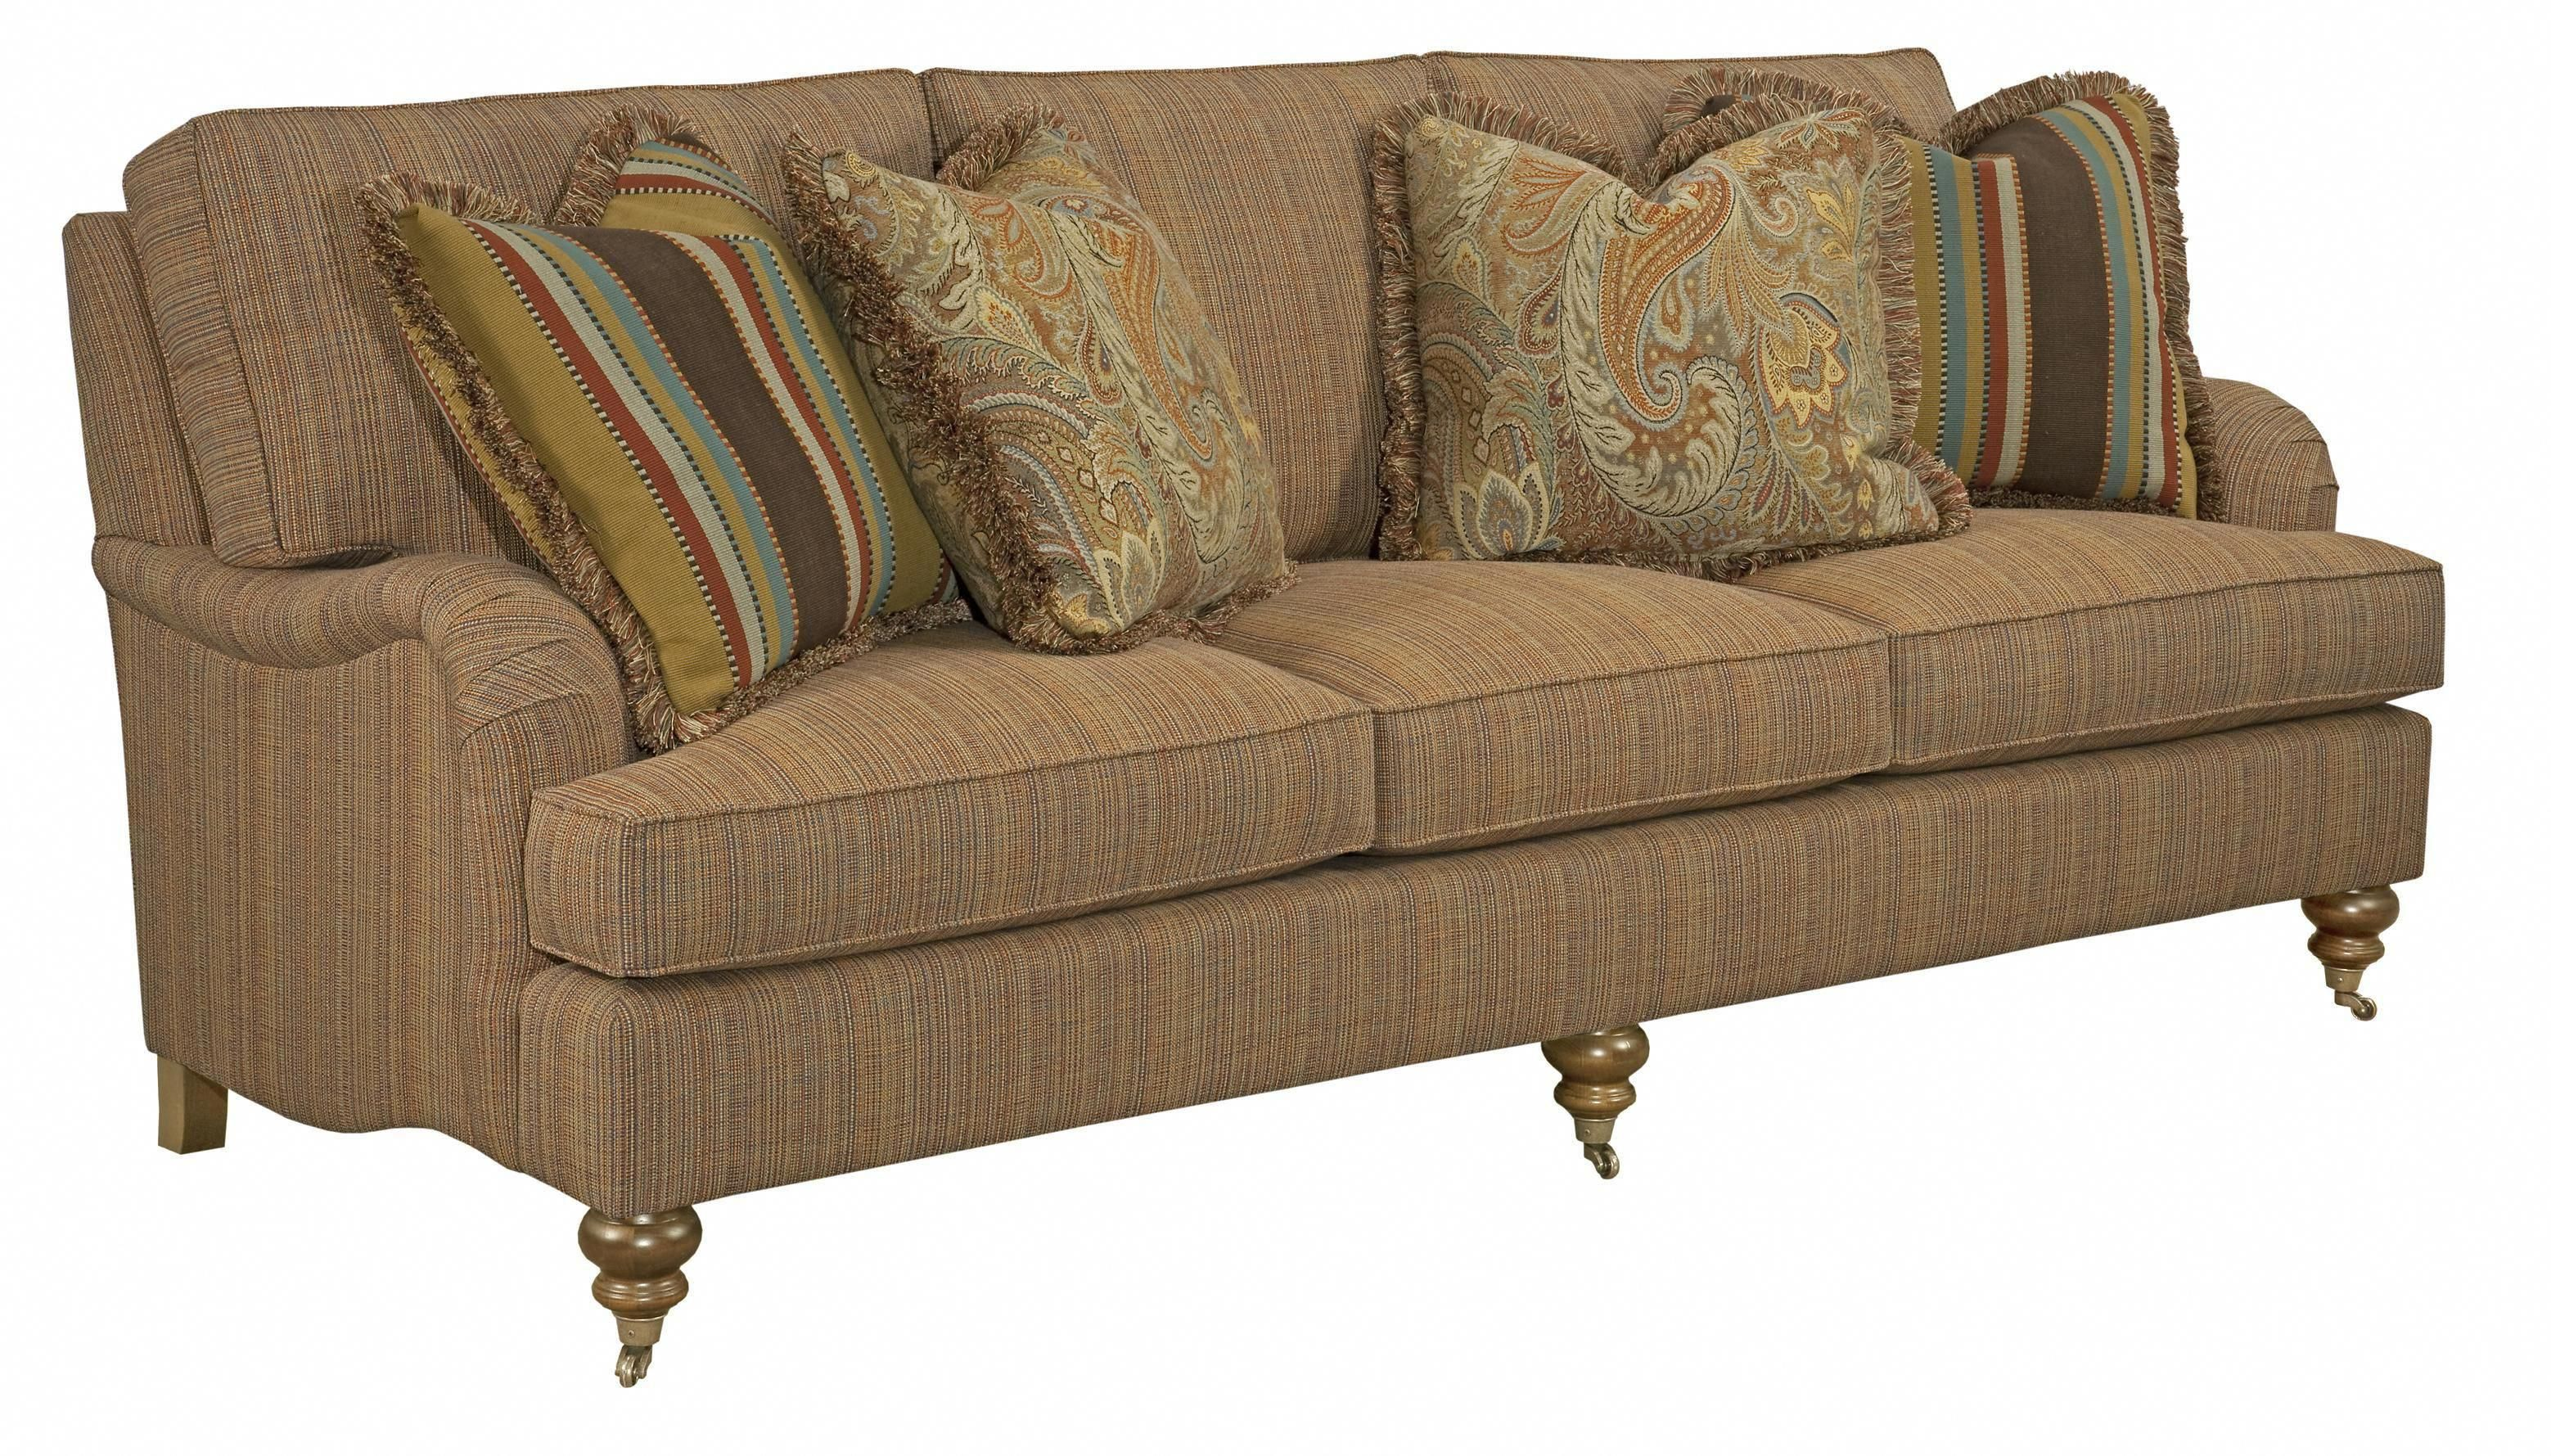 greenwich traditional sofa with english arms and turned legs by rh pinterest com